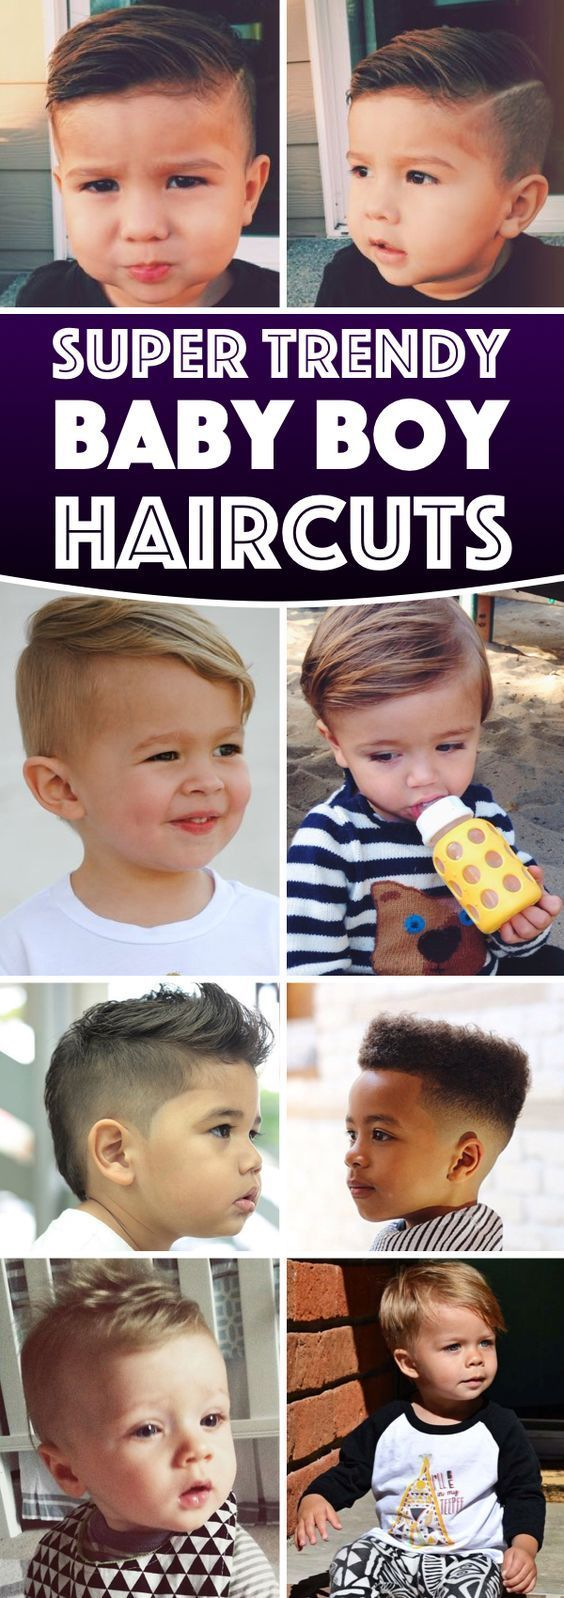 Hairstyle for teenager boy baby boy charming haircuts personality super trendy